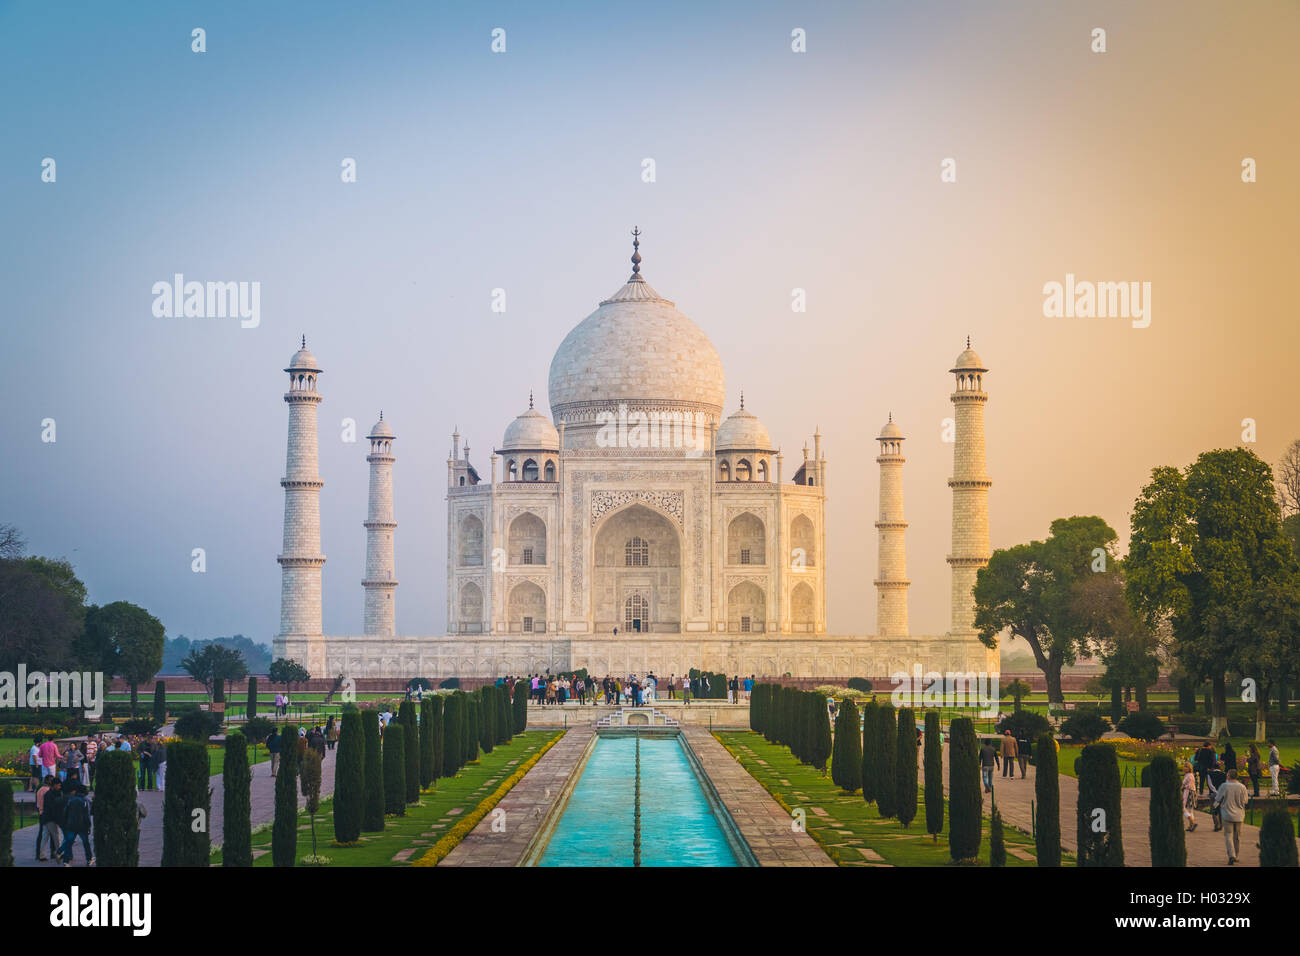 AGRA, INDIA - 28 FEBRUARY 2015: View of Taj Mahal in front of the Great Gate. South side. - Stock Image